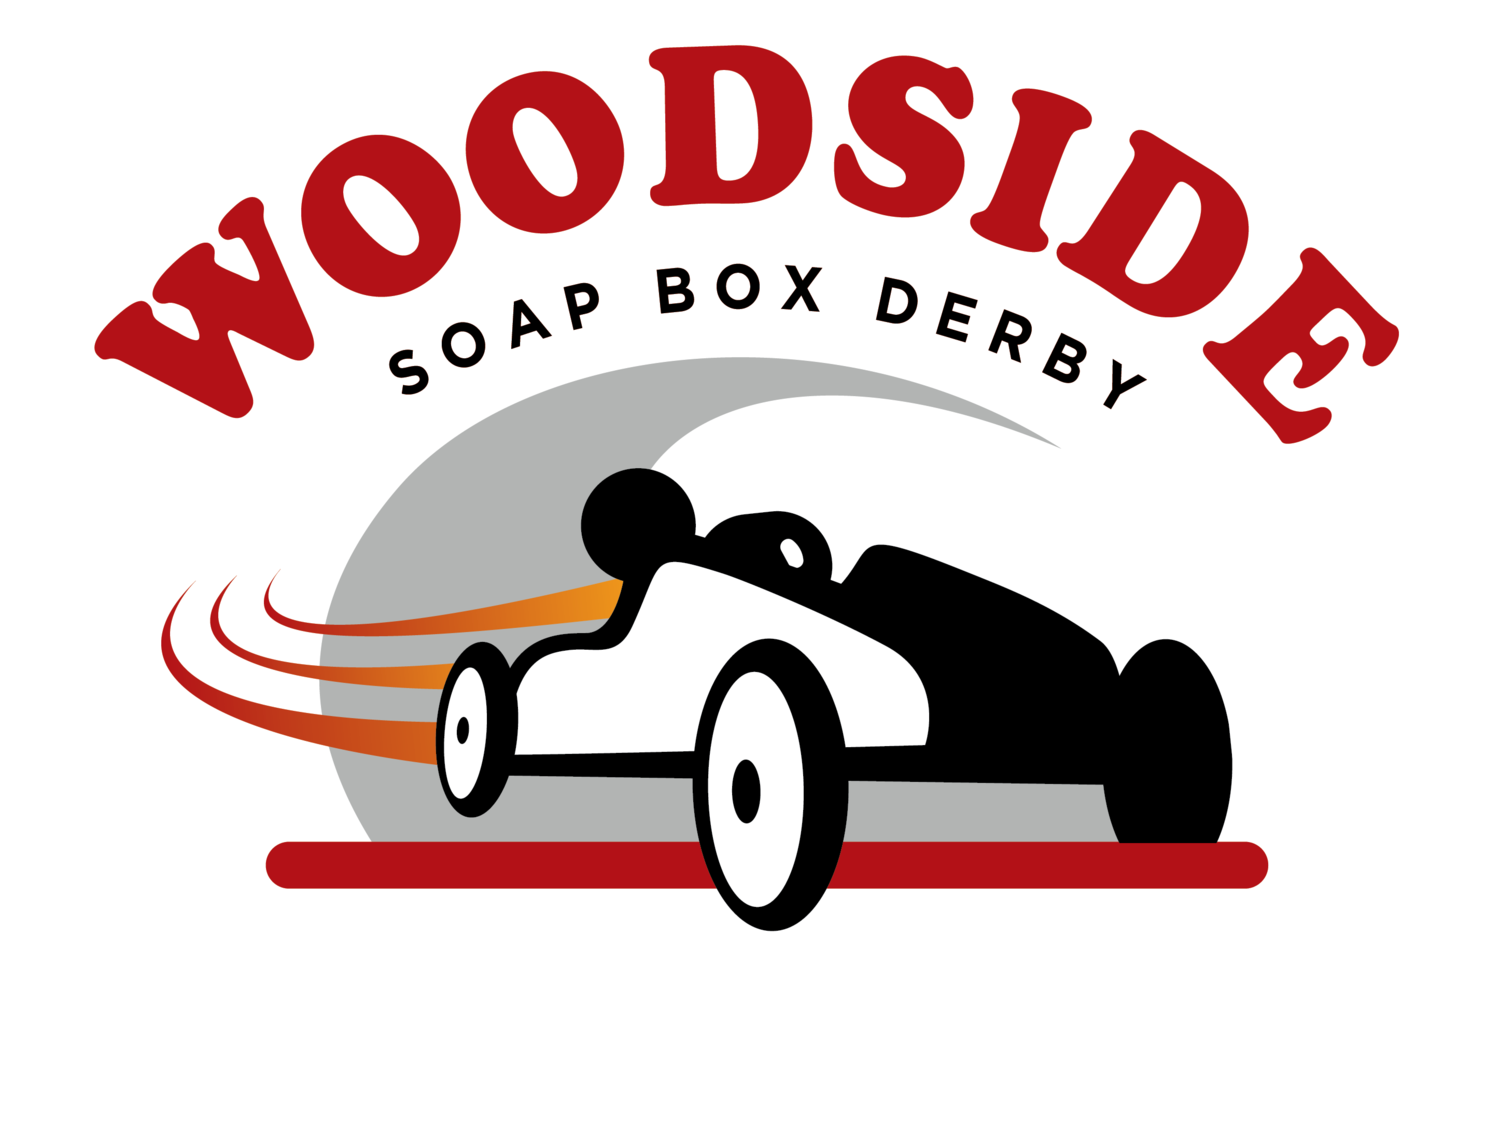 Draw Your Own Car — Woodside Soapbox Derby